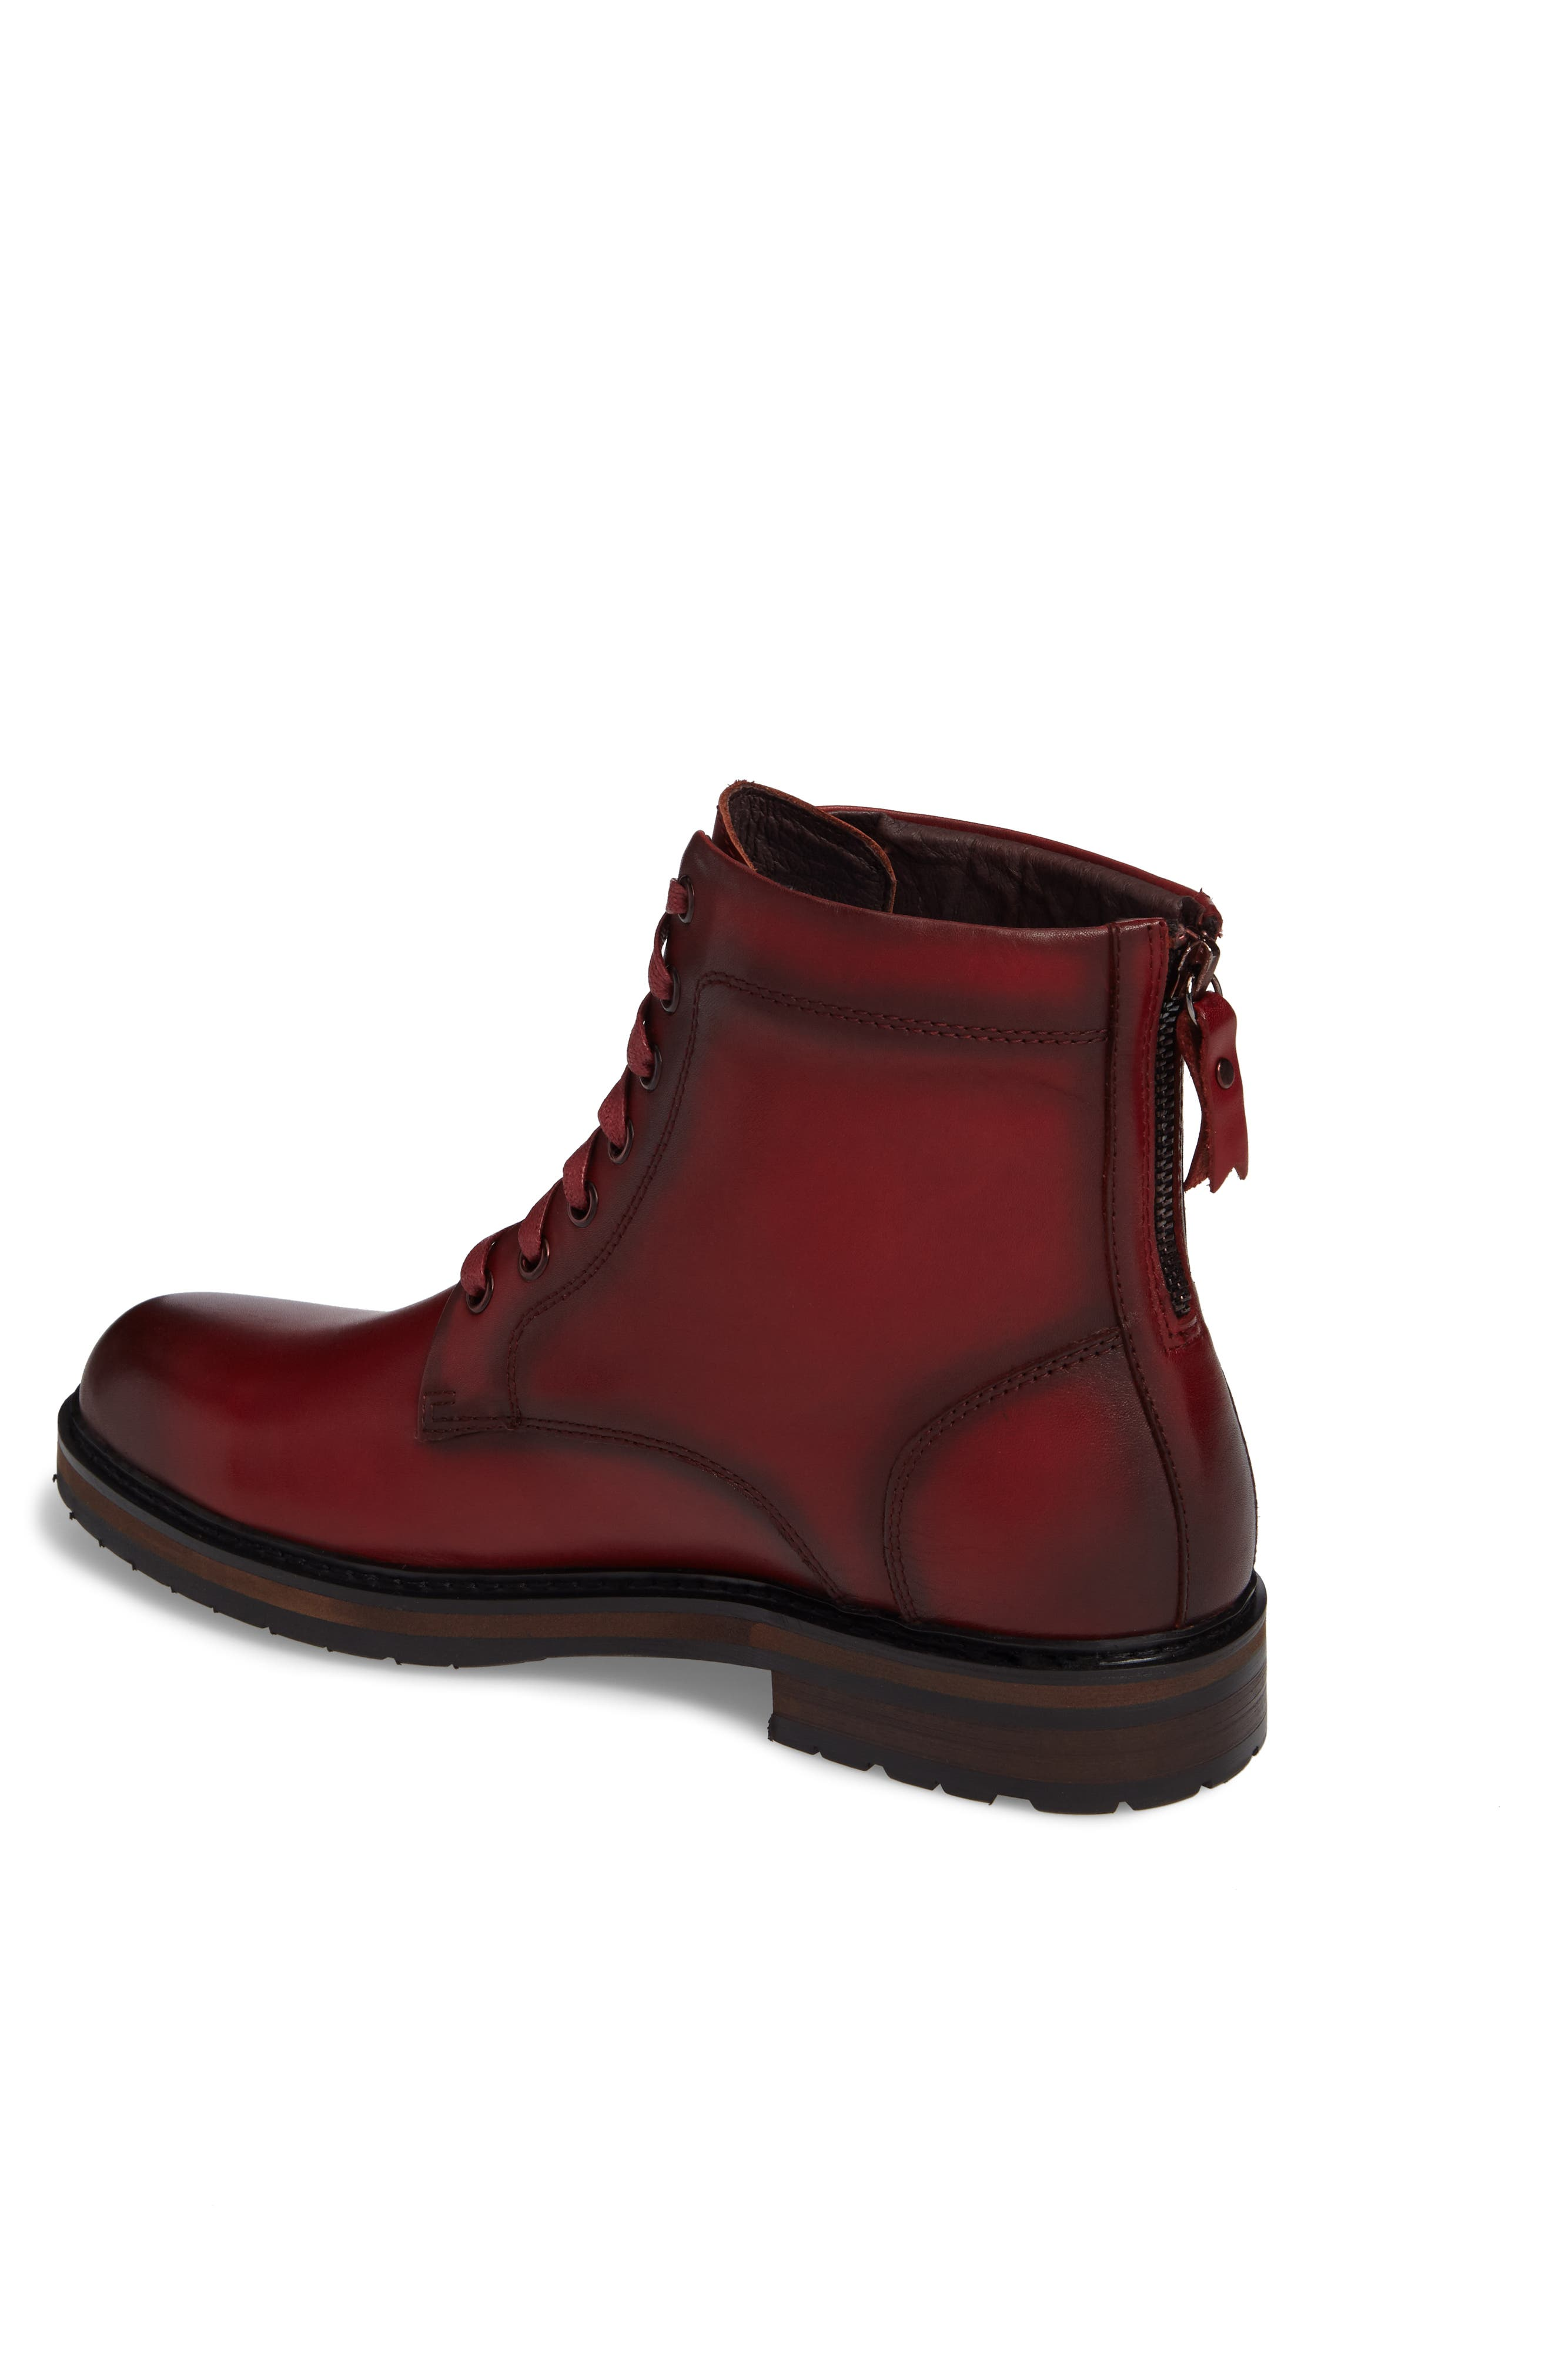 Miro Combat Boot,                             Alternate thumbnail 2, color,                             Wine Leather